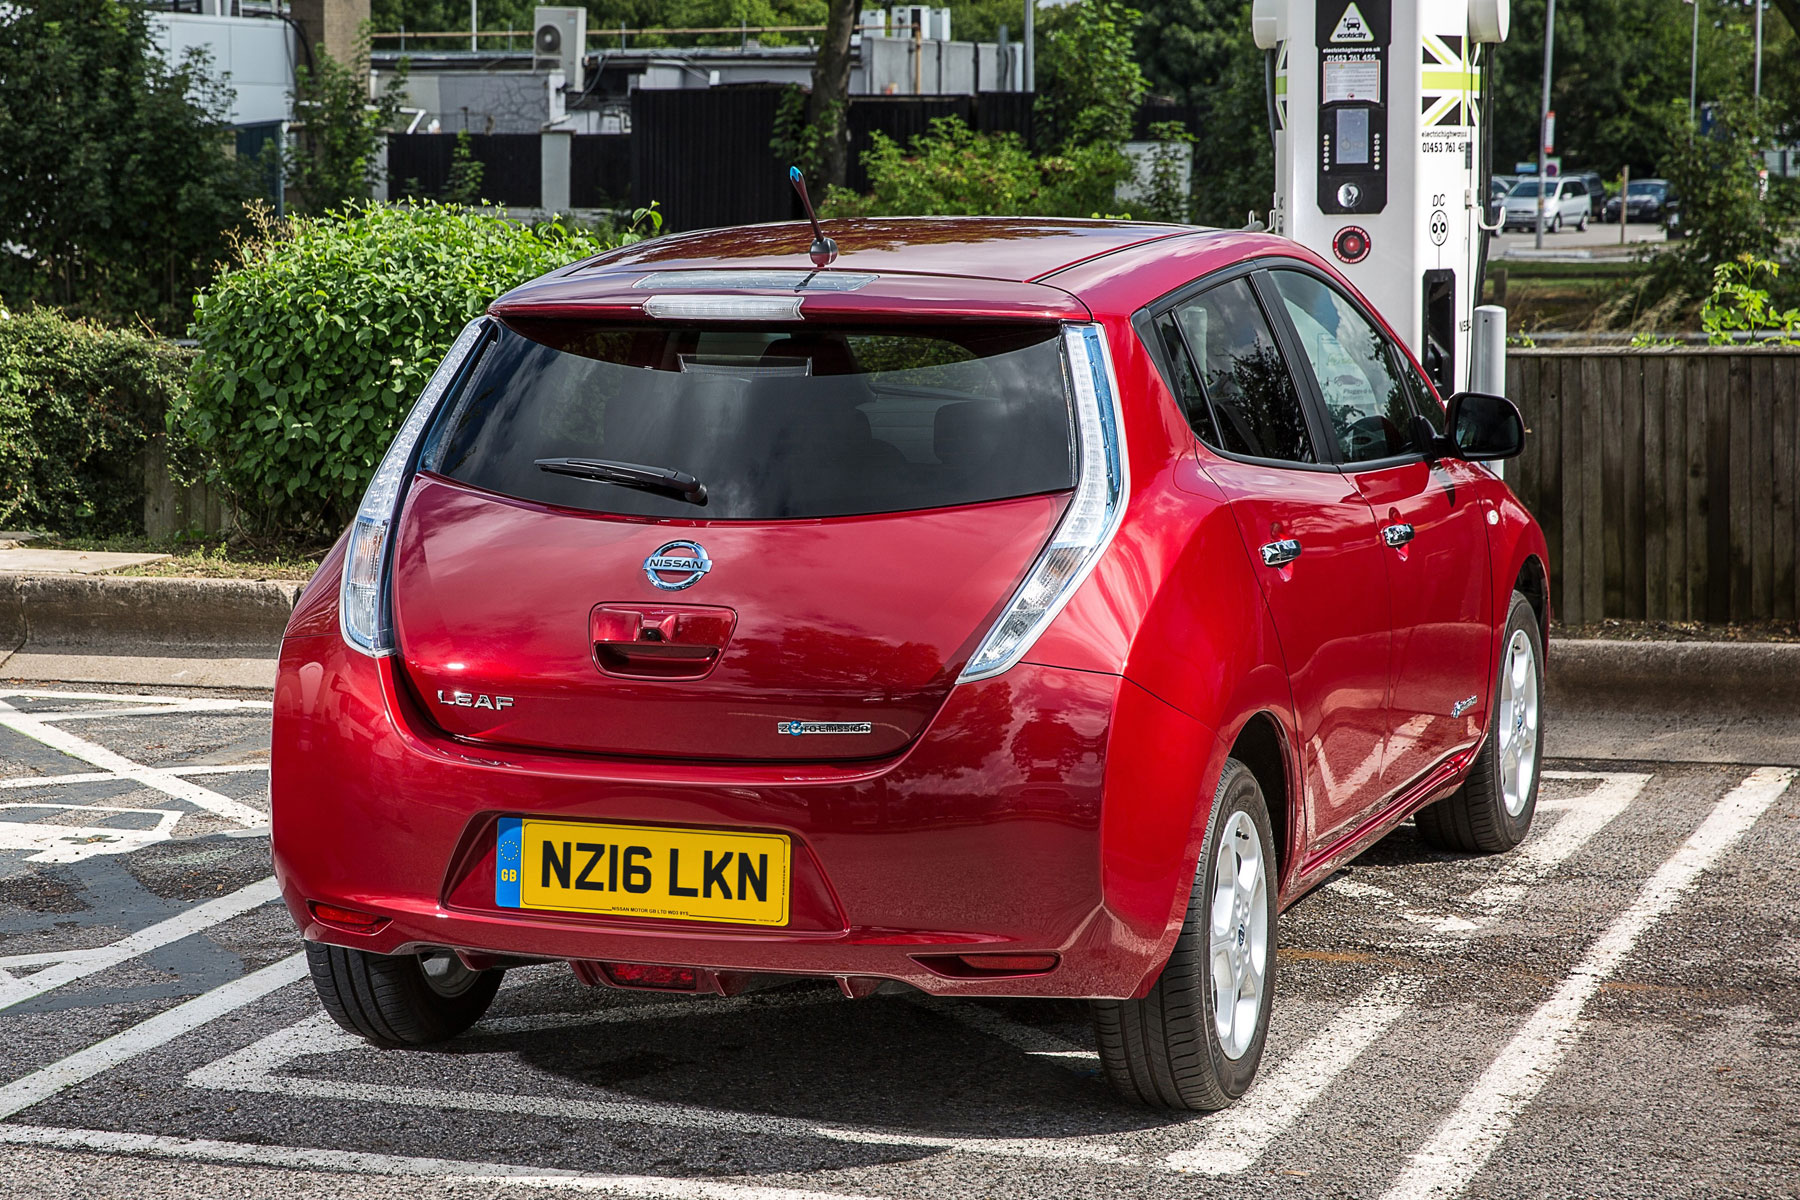 There could be more electric car chargers than petrol stations by 2020